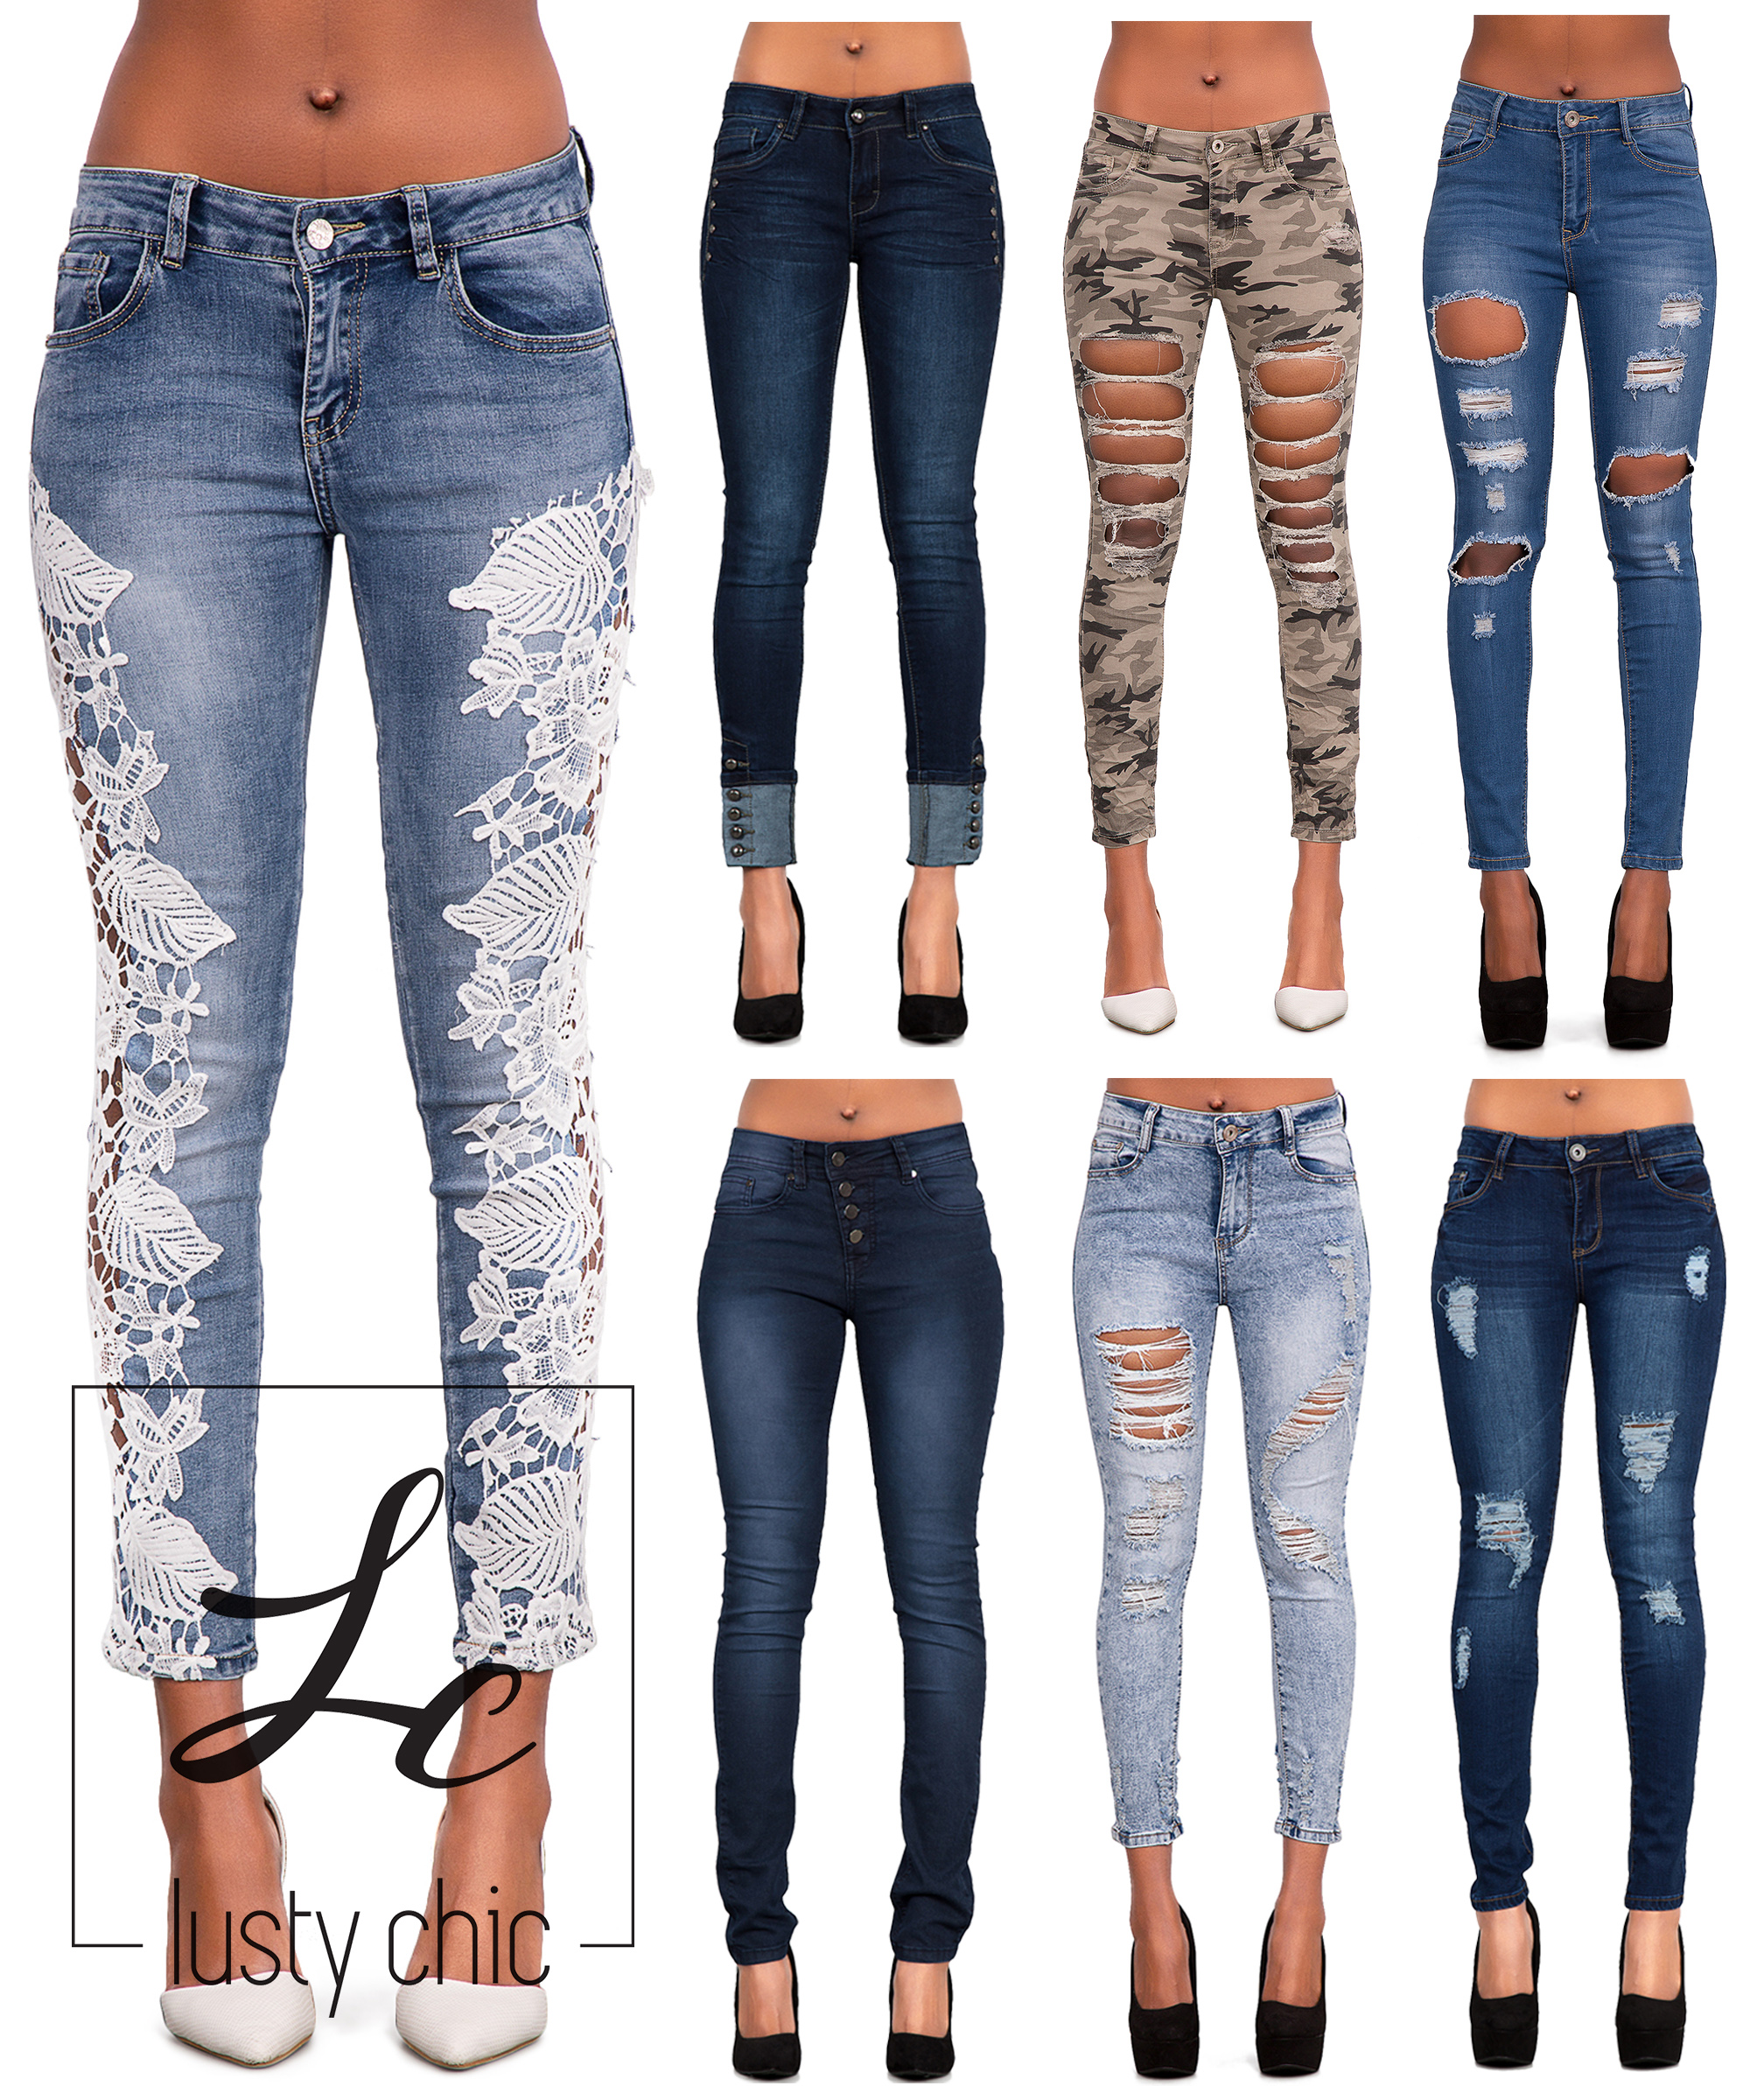 Womens Ripped Jeans | eBay